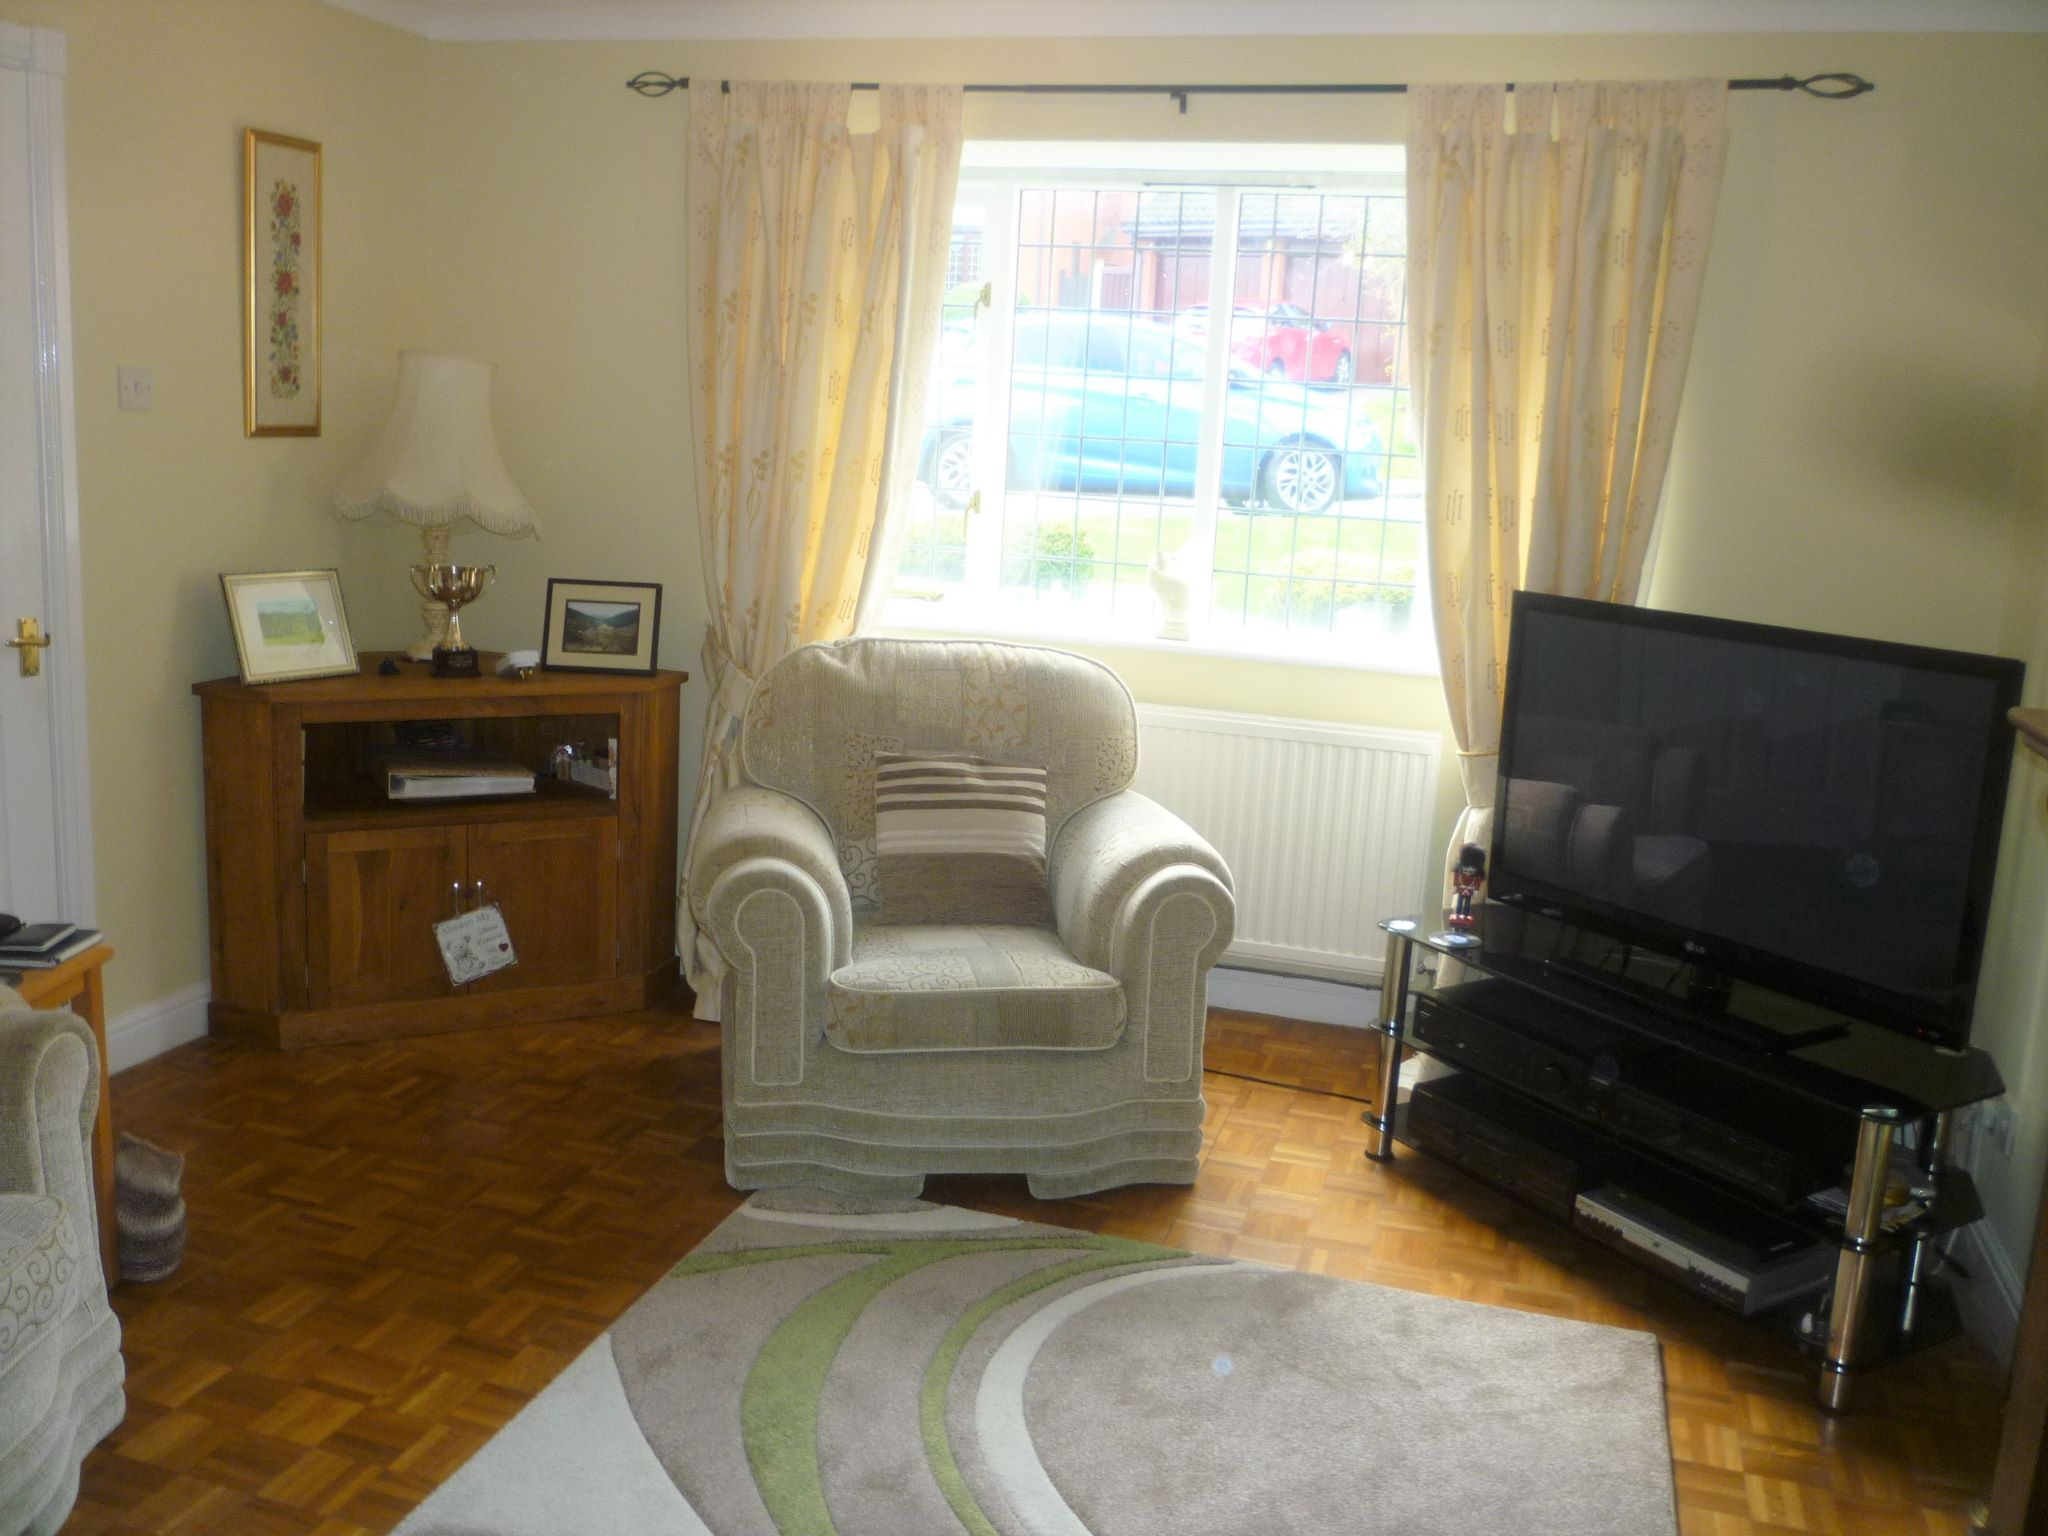 4 bedroom detached house For Sale in Abergele - Photograph 2